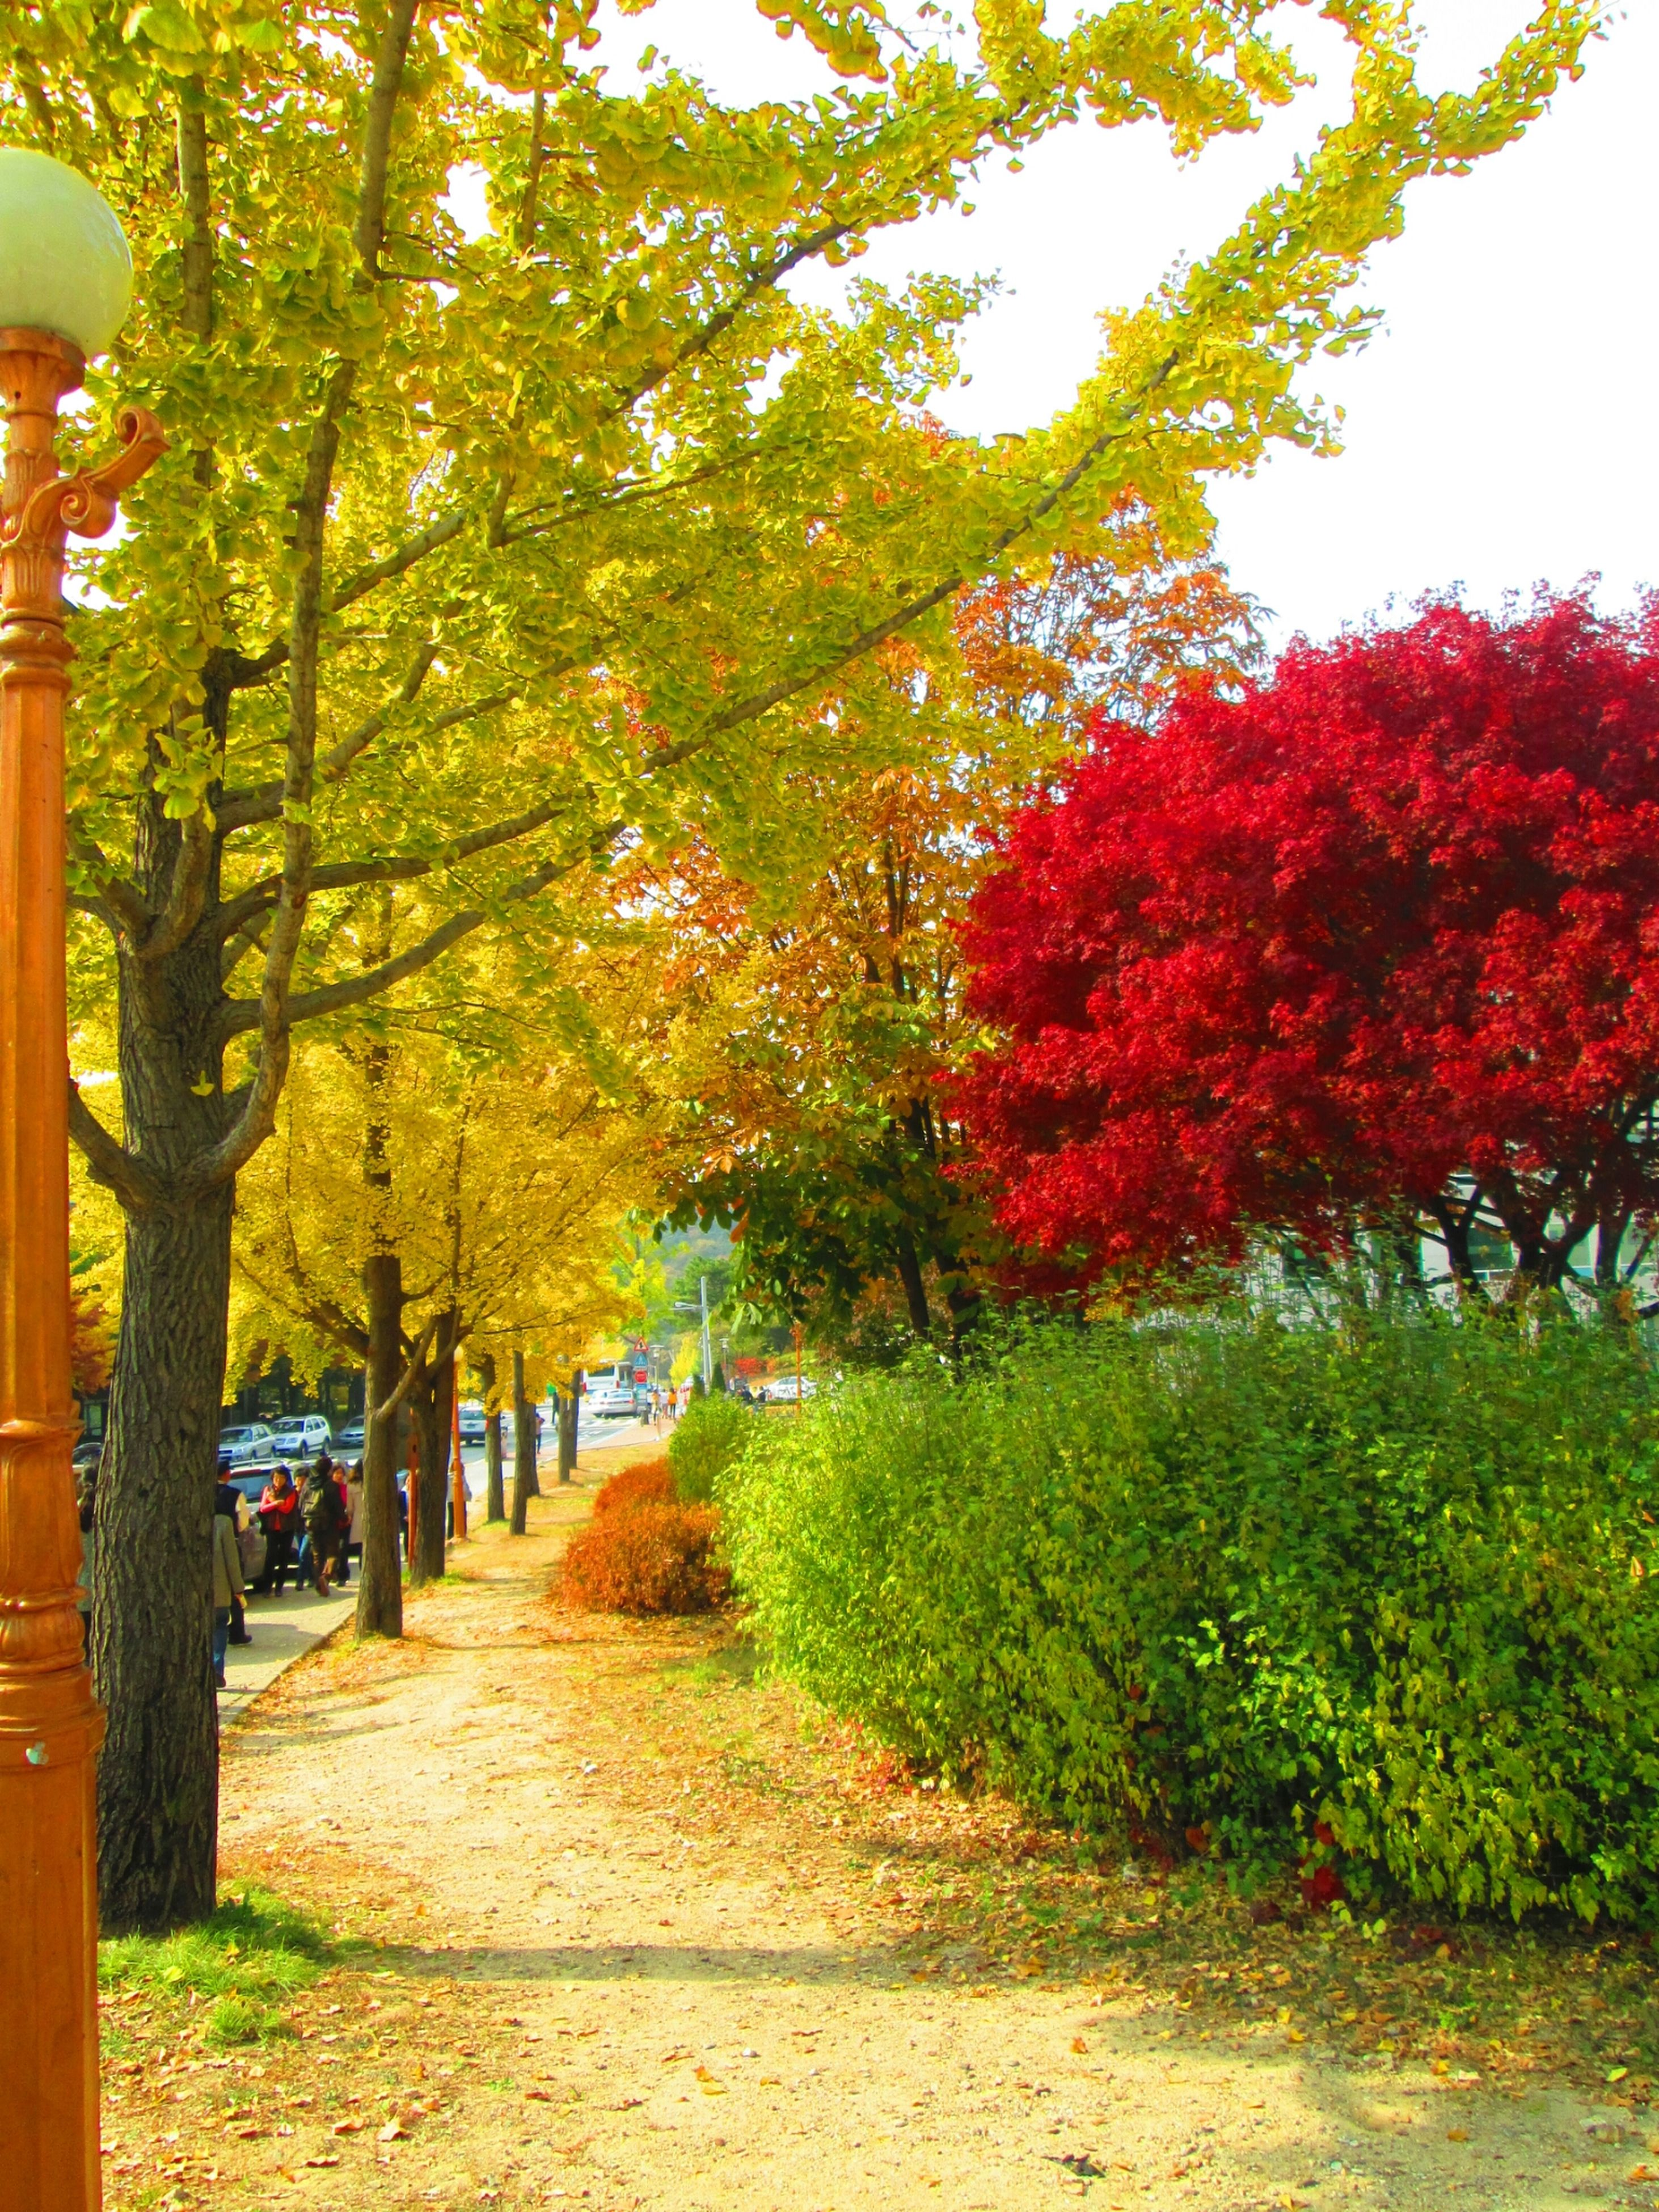 tree, the way forward, growth, footpath, park - man made space, treelined, beauty in nature, nature, autumn, tranquility, change, flower, diminishing perspective, sunlight, incidental people, road, day, walkway, branch, tranquil scene